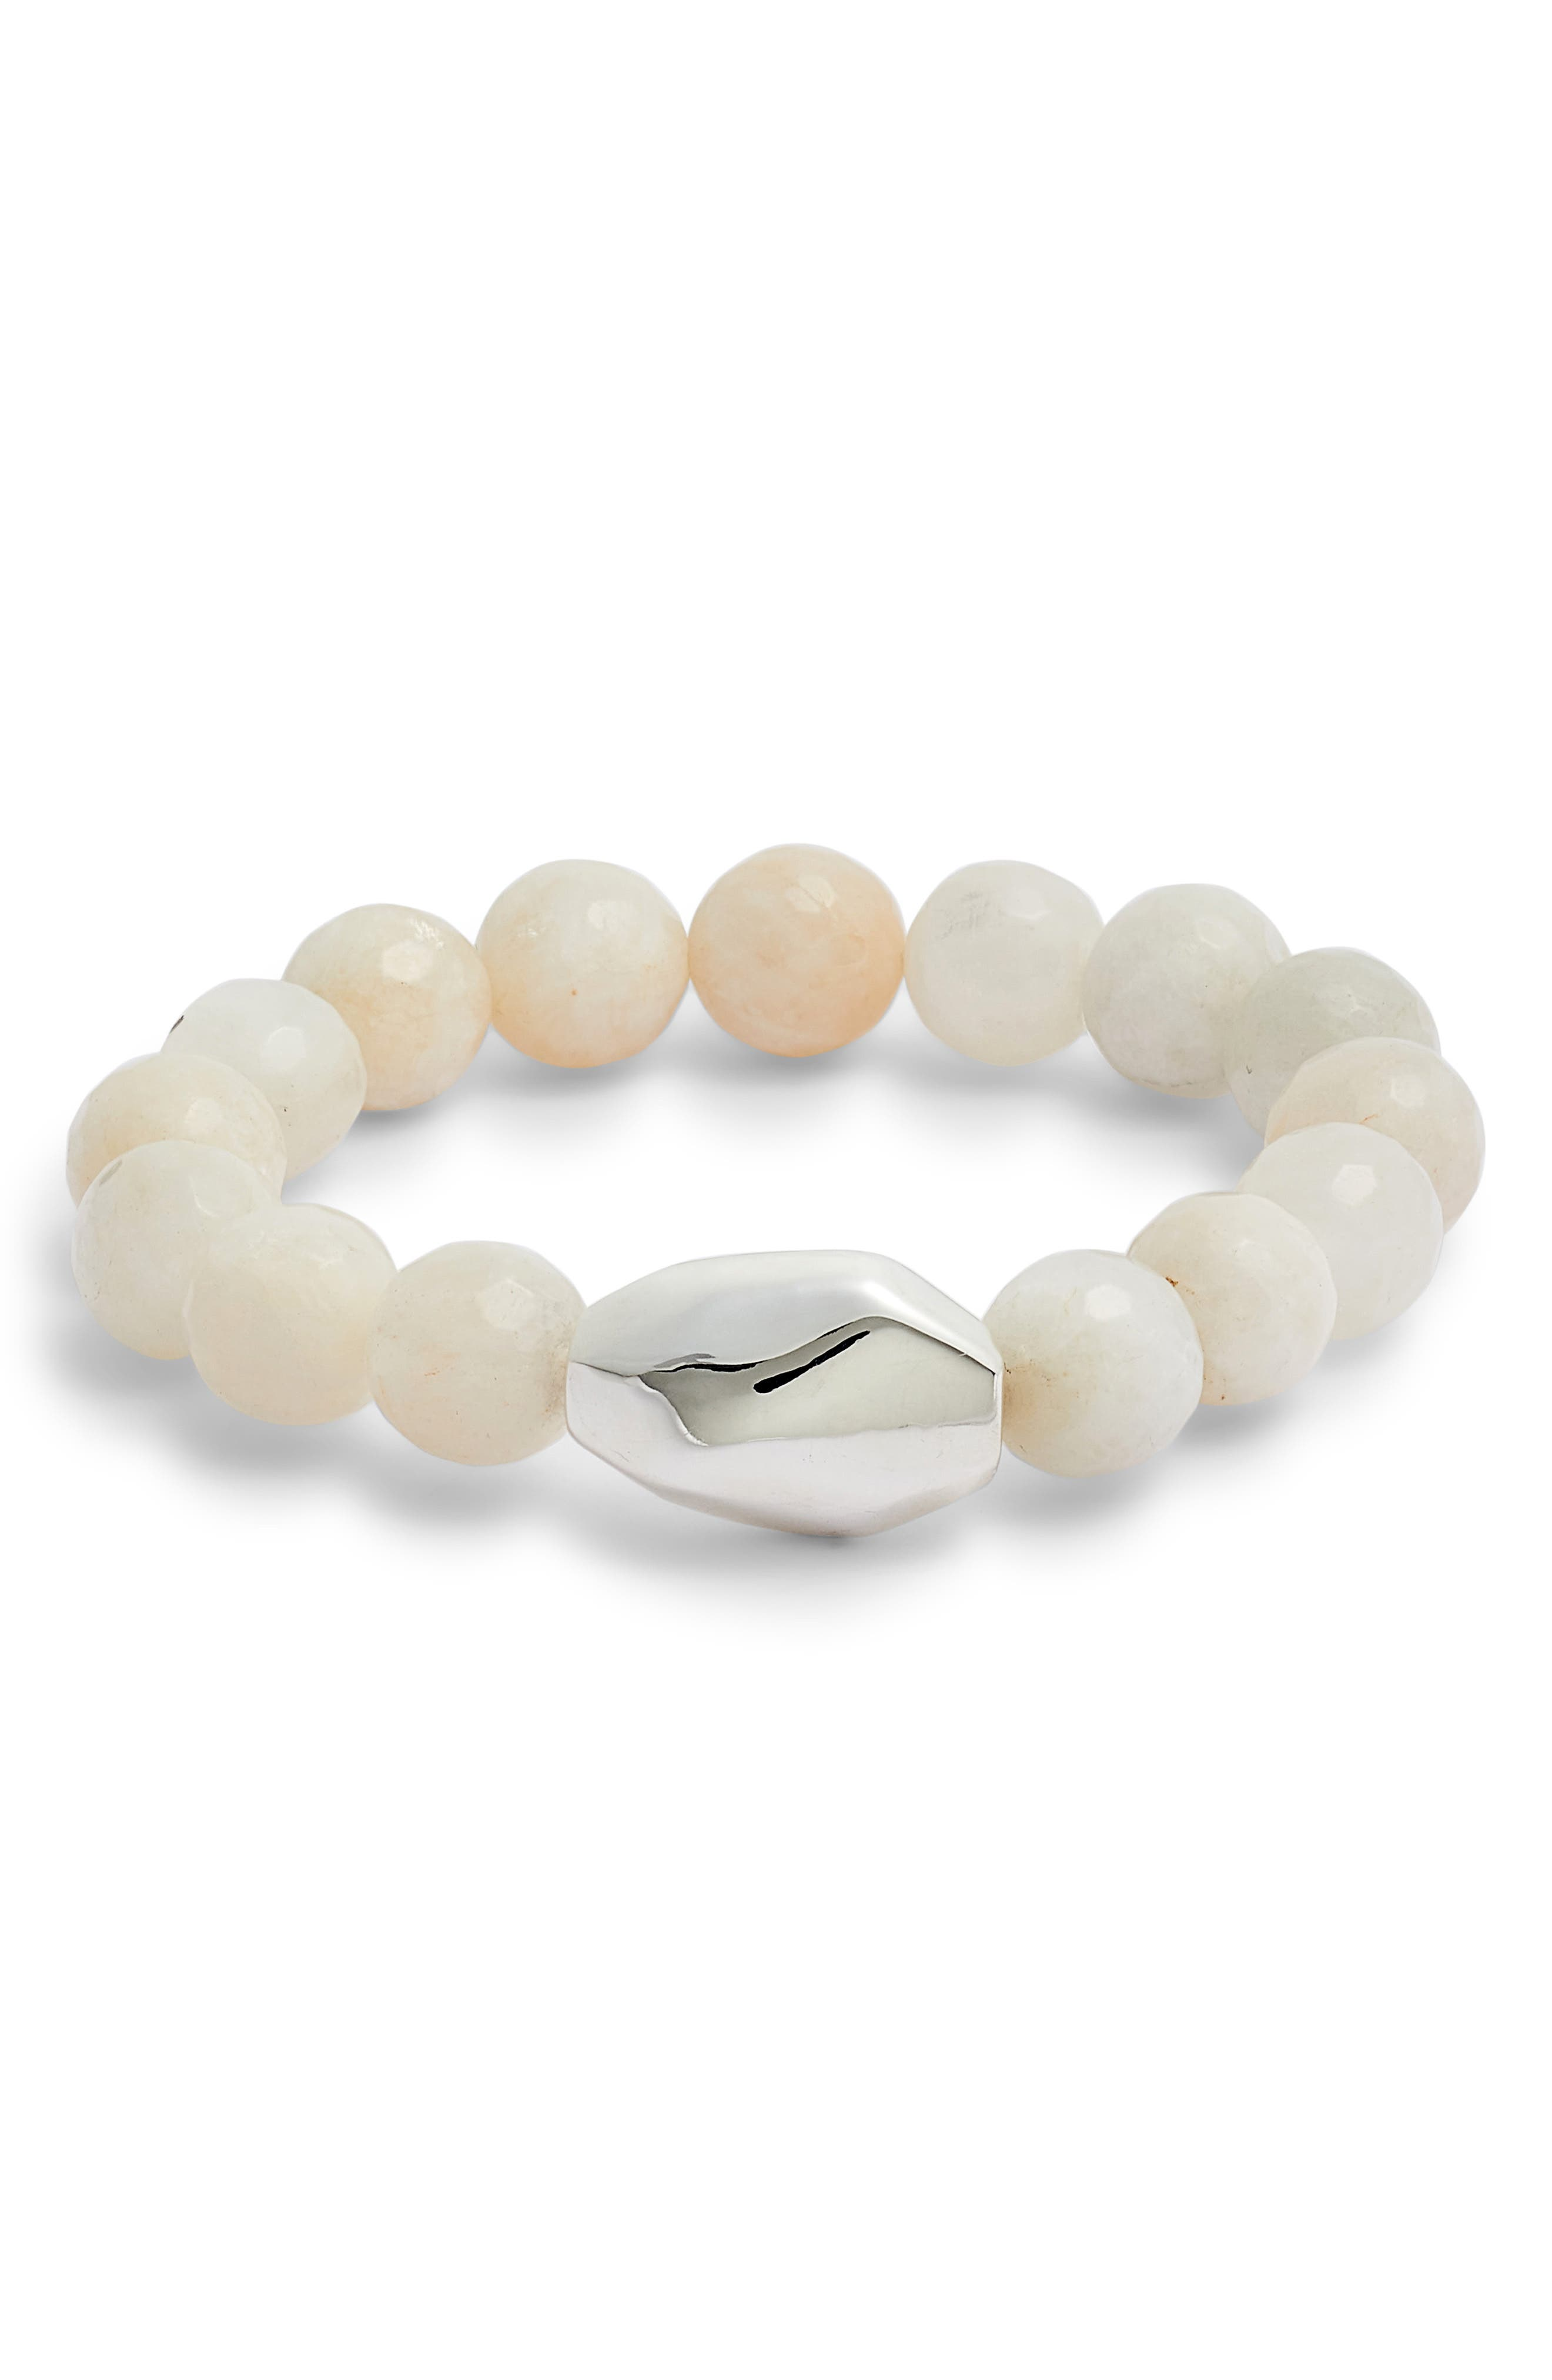 White Moonstone Stretch Bracelet,                         Main,                         color, White W/ Silver